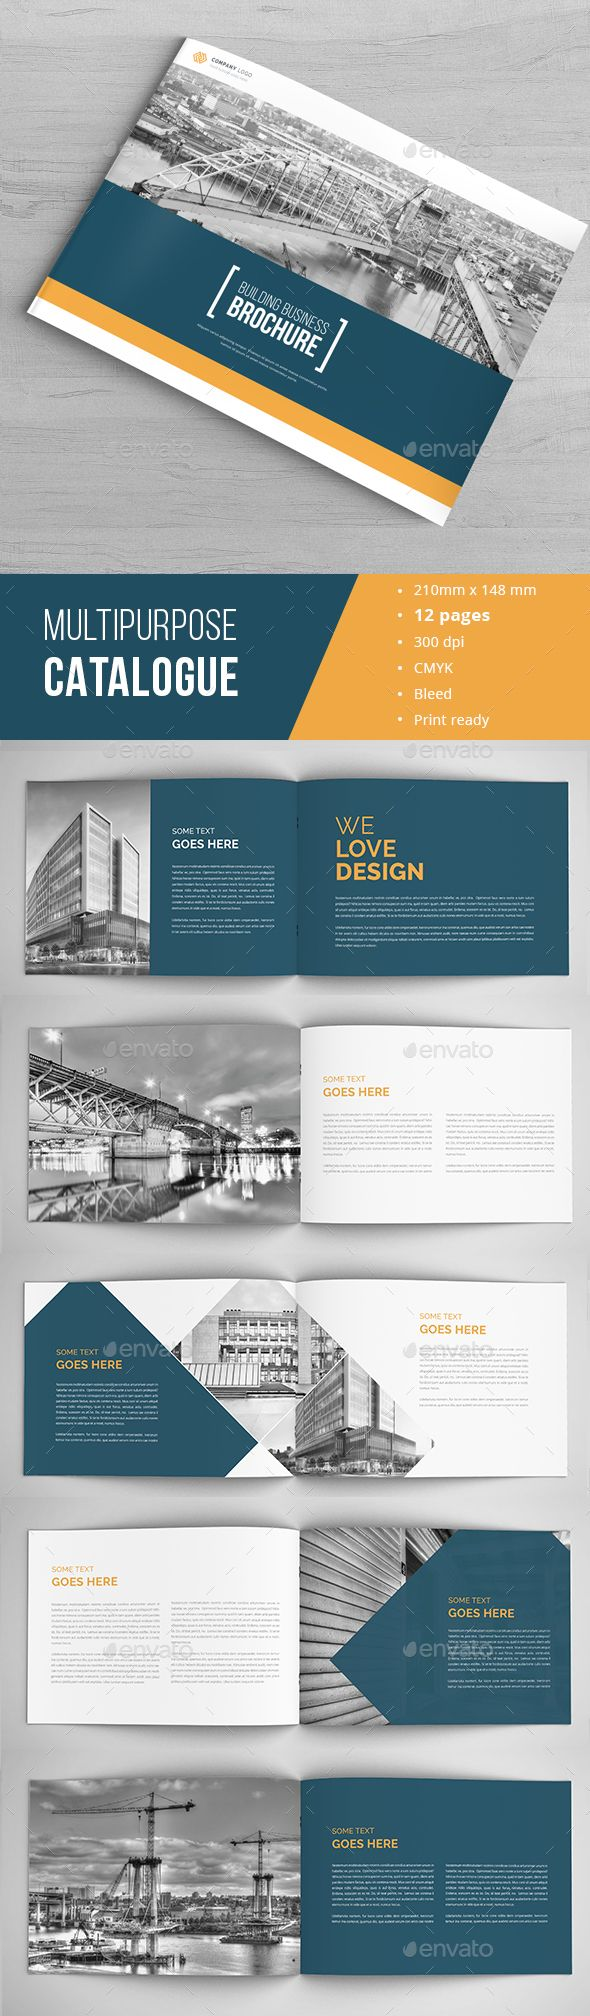 Architecture Business Brochure Template InDesign INDD. Download here: http://graphicriver.net/item/architecture-business-brochure/16669726?ref=ksioks